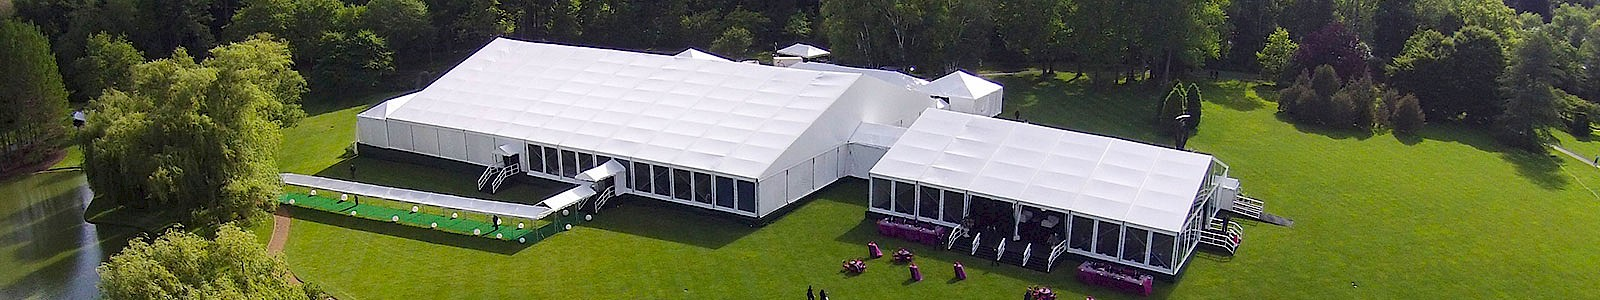 Clearspan Structure Tent Country Club